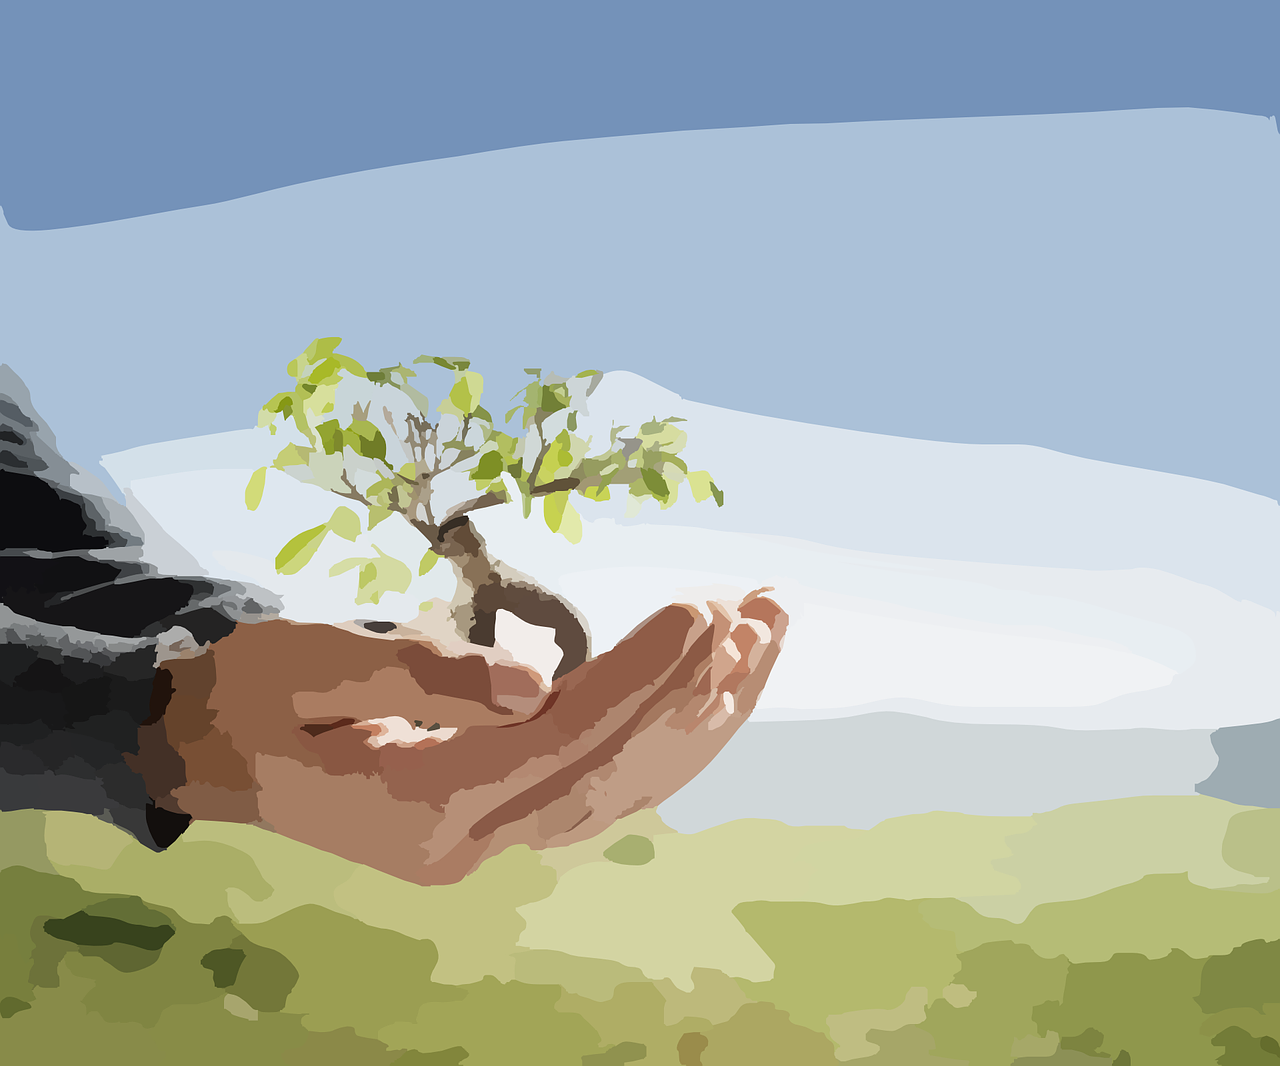 10 Things You Should Do To Promote Sustainability